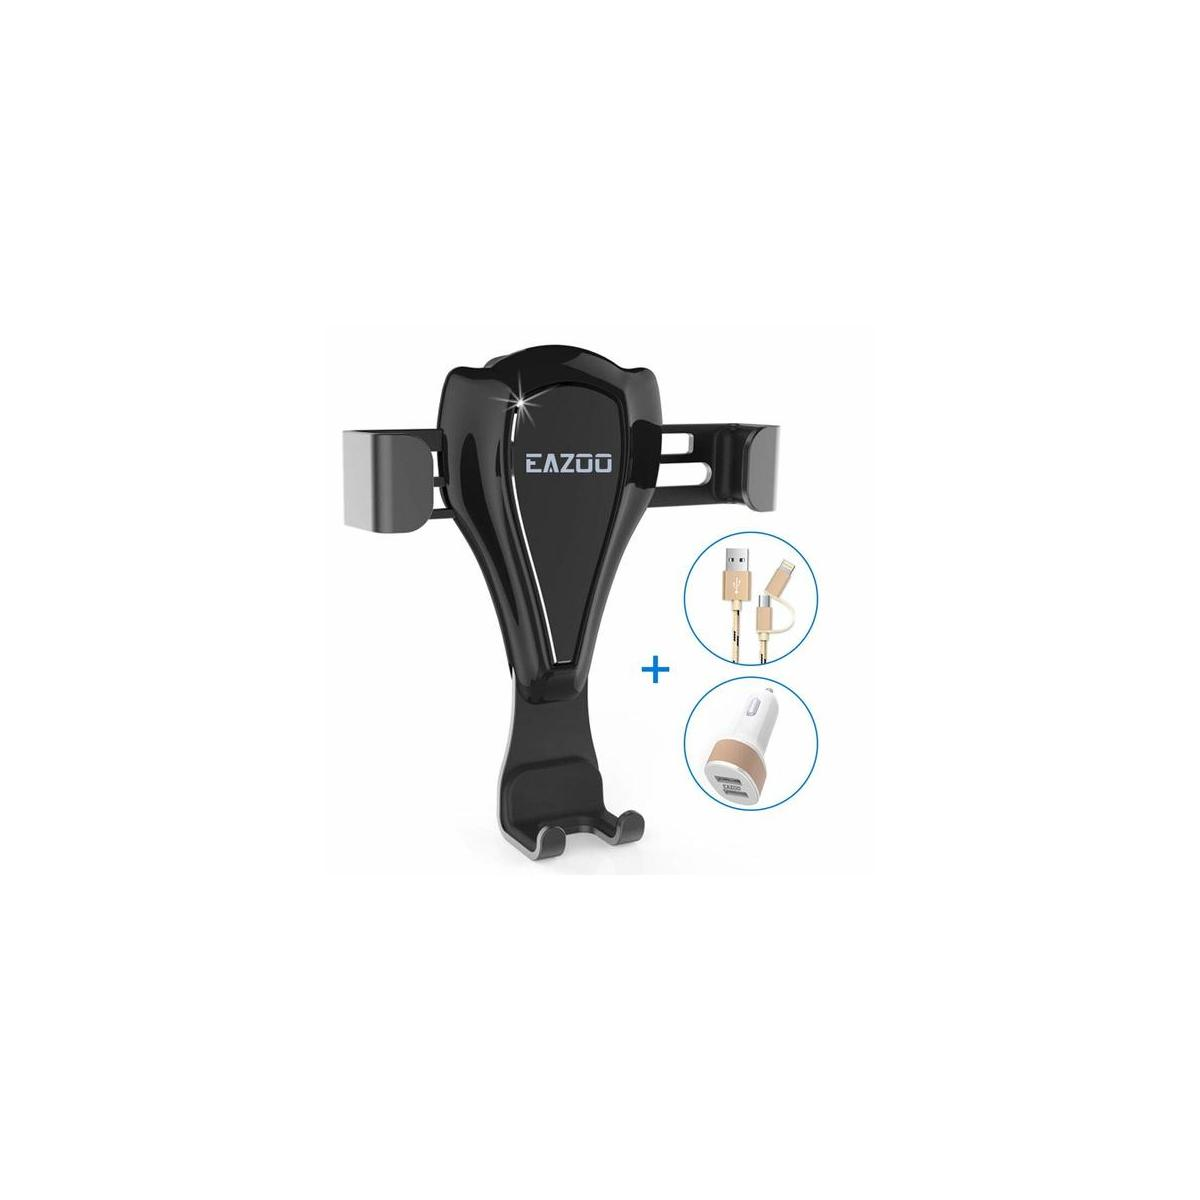 EAZOO Car Phone Mount Air Vent Phone Holder for Car with USB Cable, Car Charger and Cleaning Set